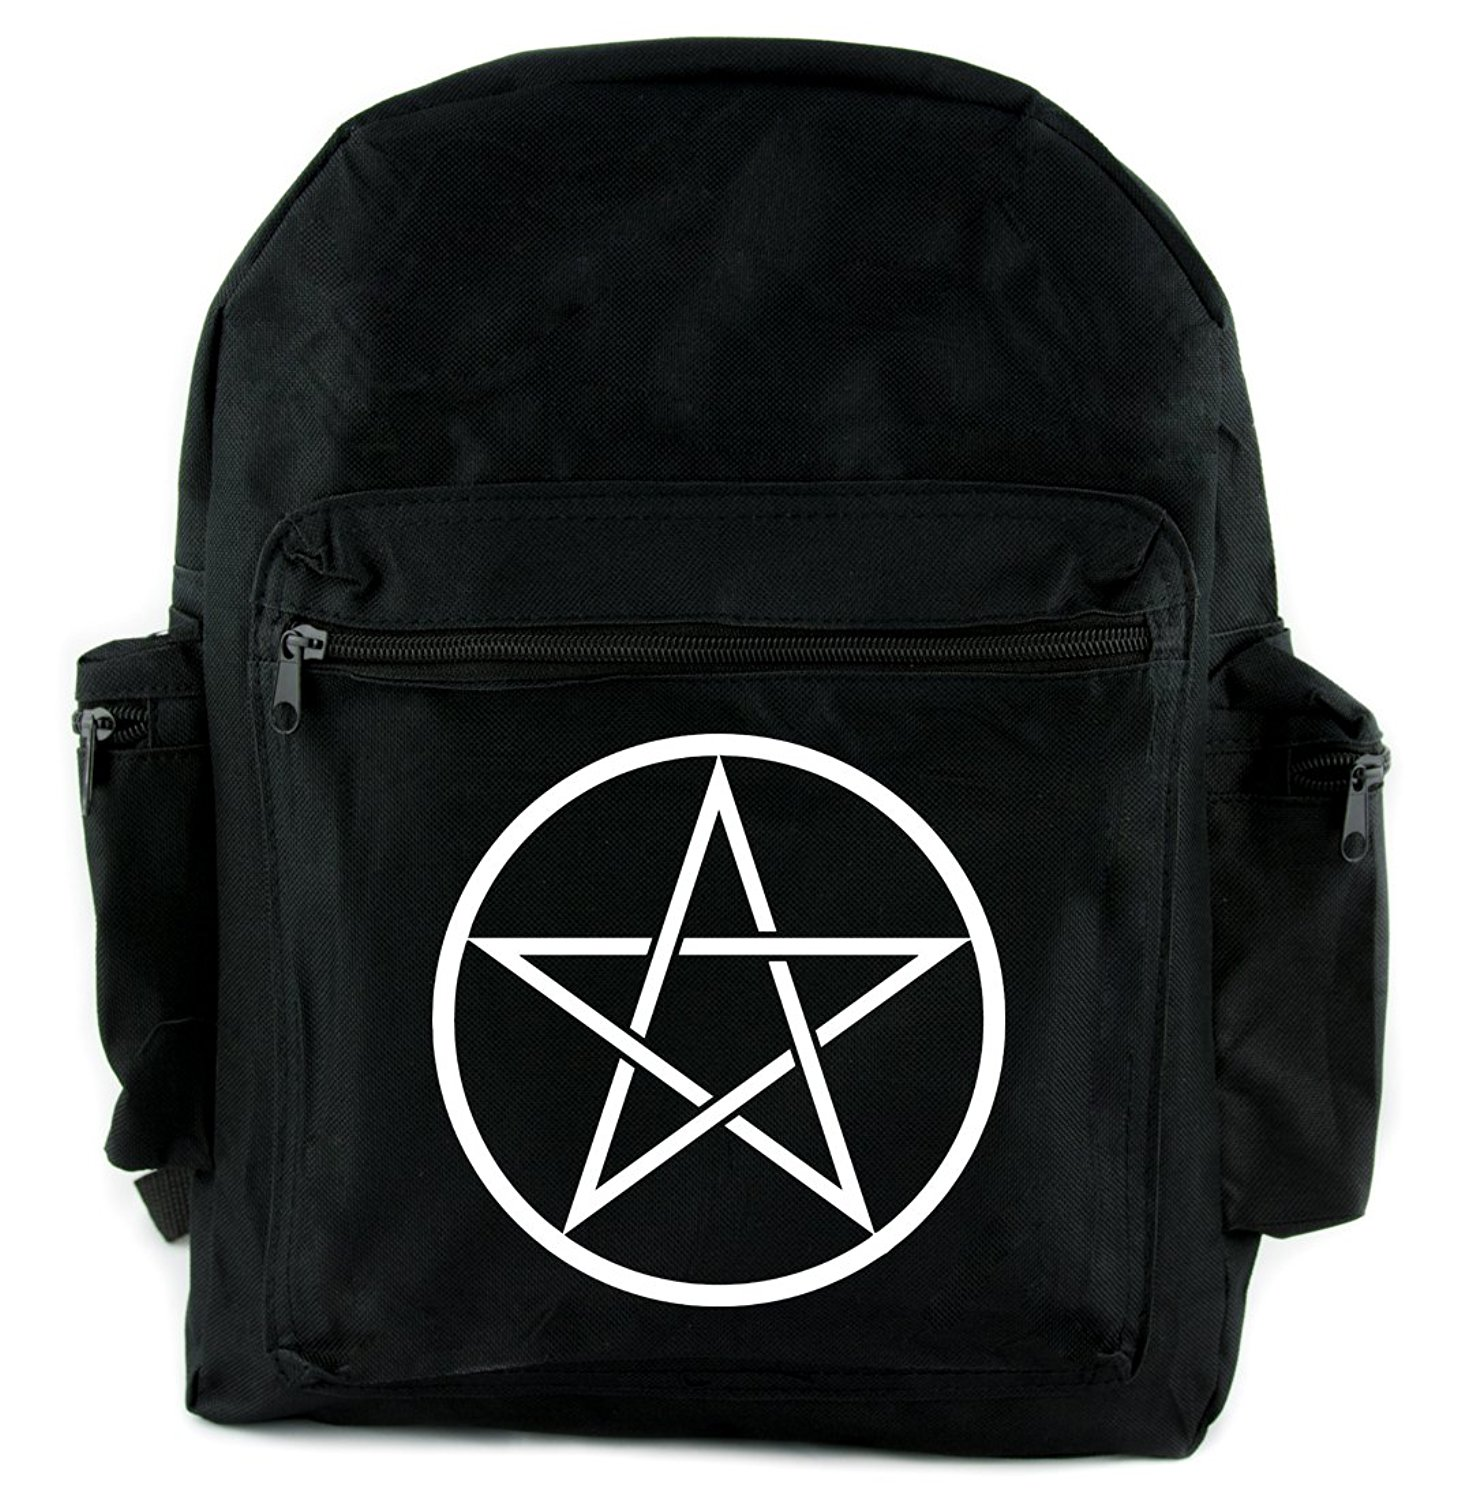 f98490f477 White Wicca Ritual Woven Pentagram Backpack School Bag Occult Alternative  Clothing